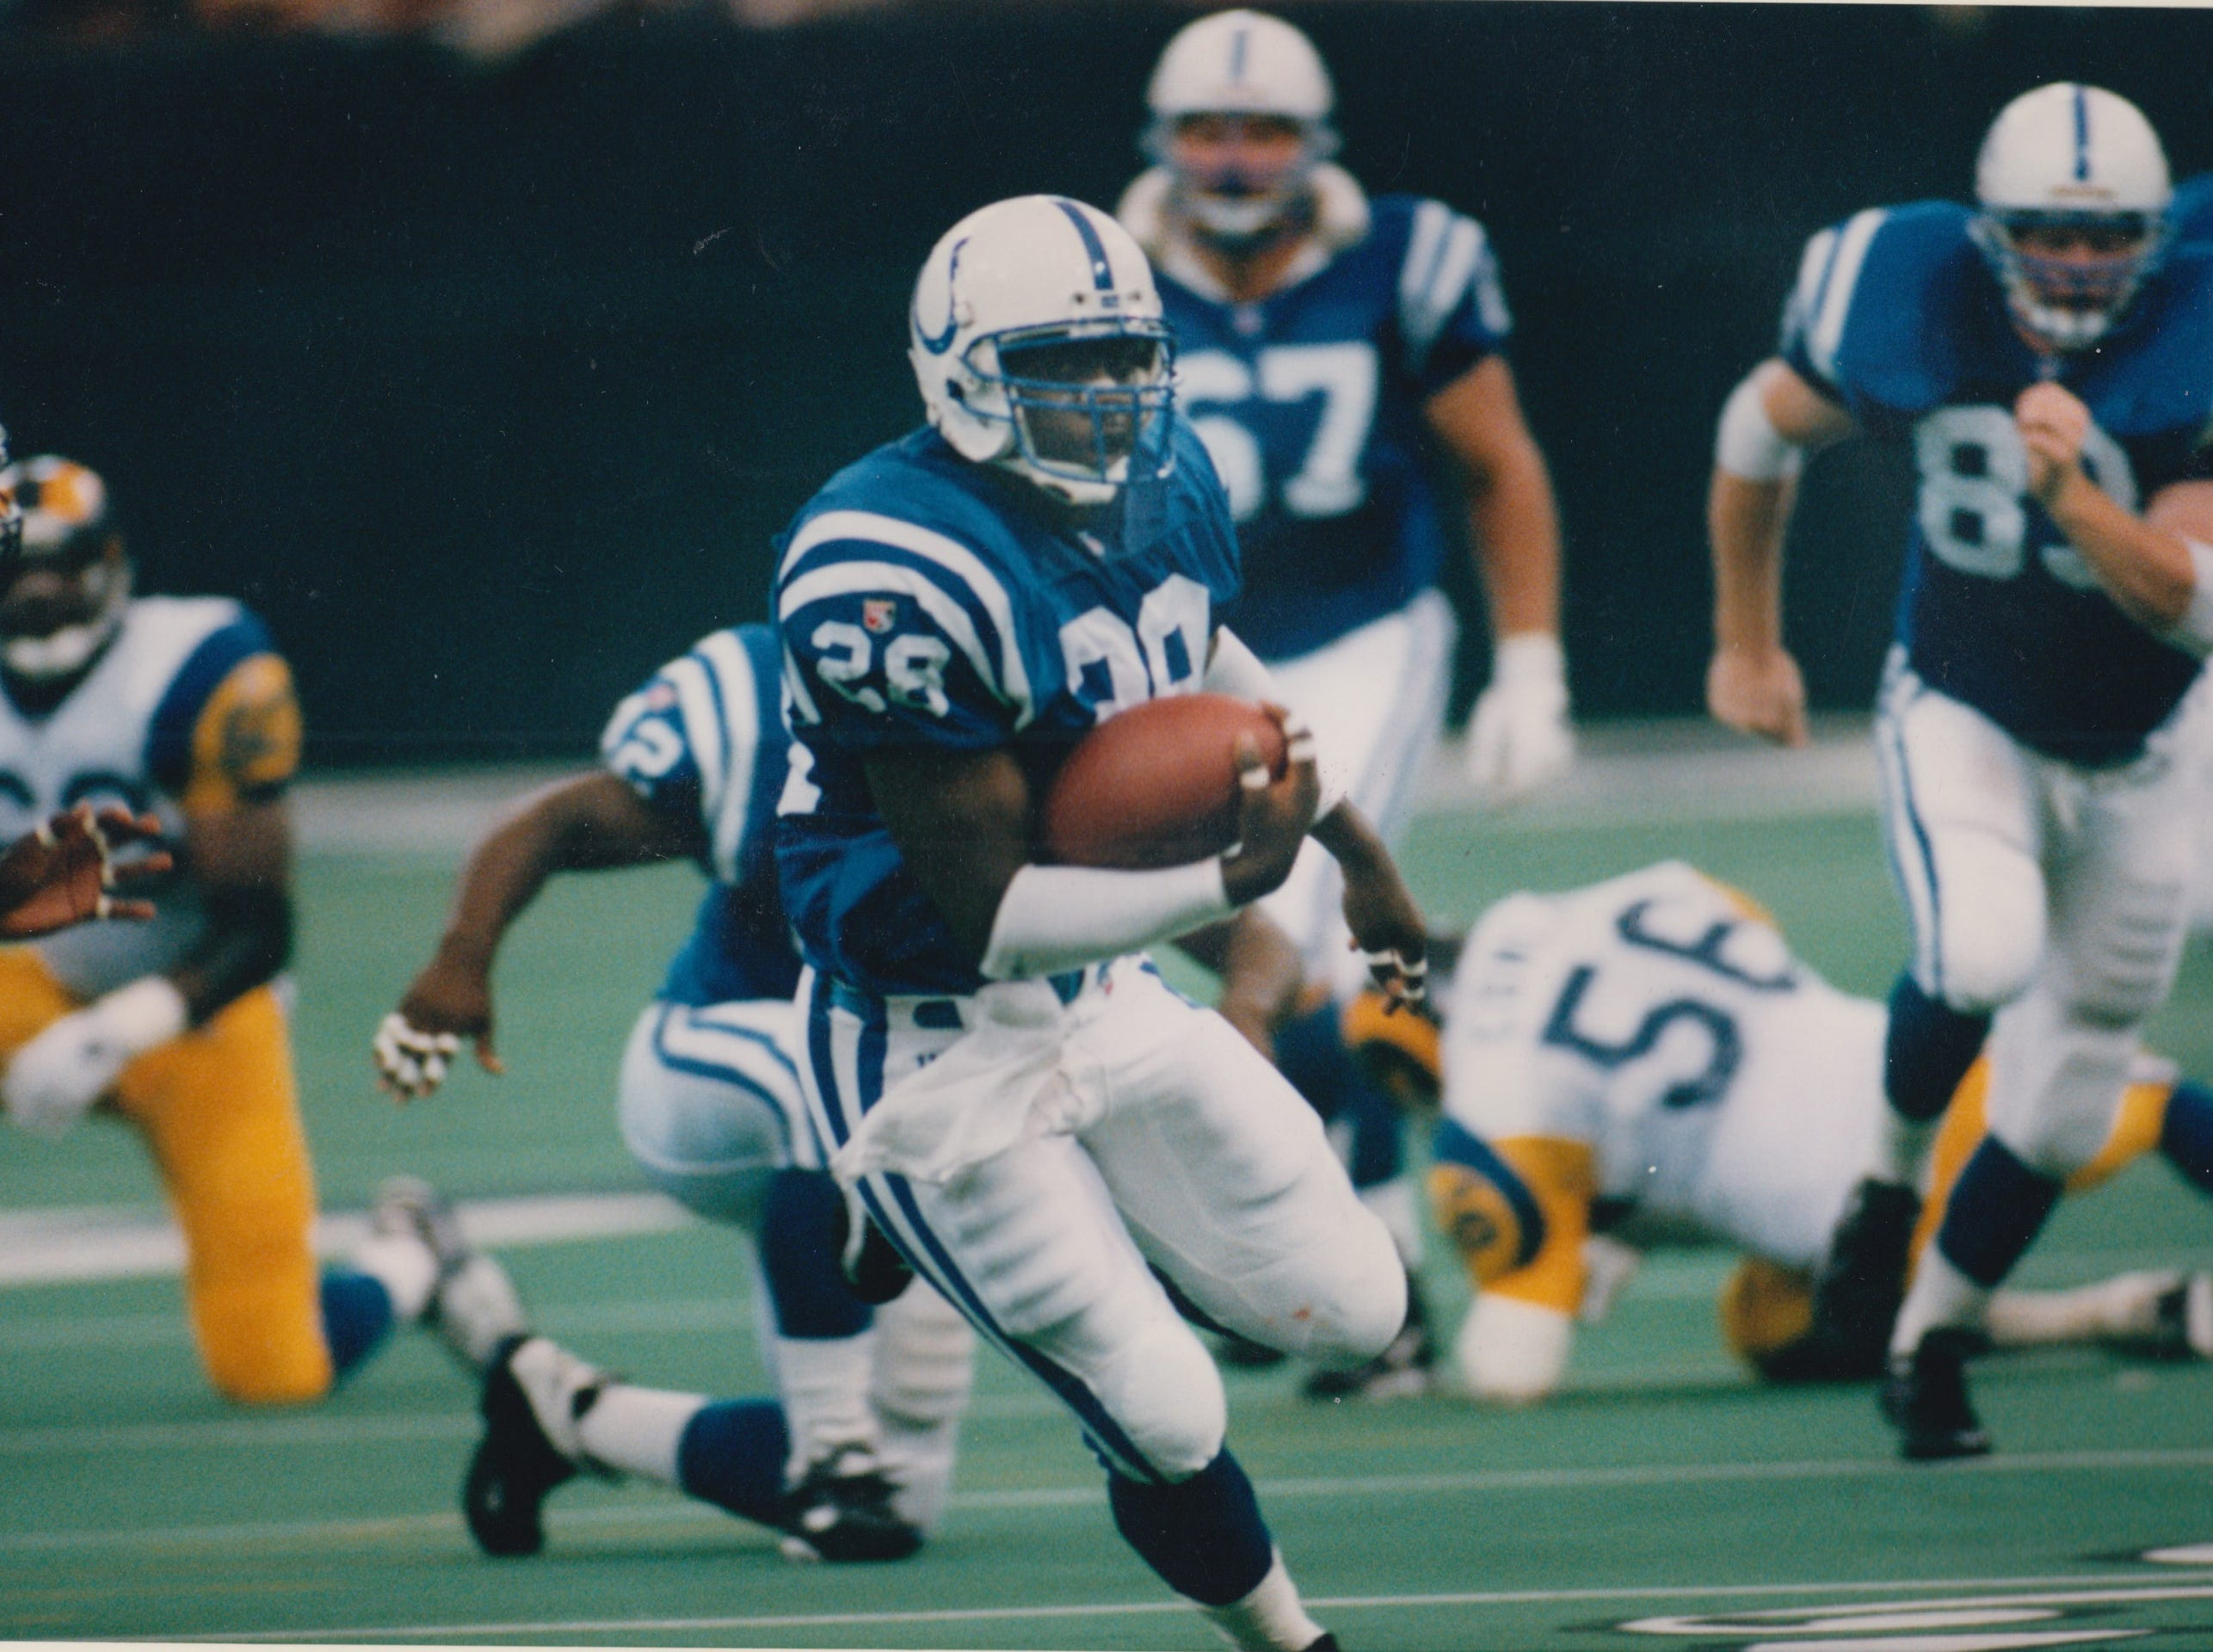 Marshall Faulk breaks free toward his second touchdown run, a 33-yarder that put the Colts up for good against the St. Louis Rams. The Colts won 21-18 in the Oct. 1, 1995 showdown.